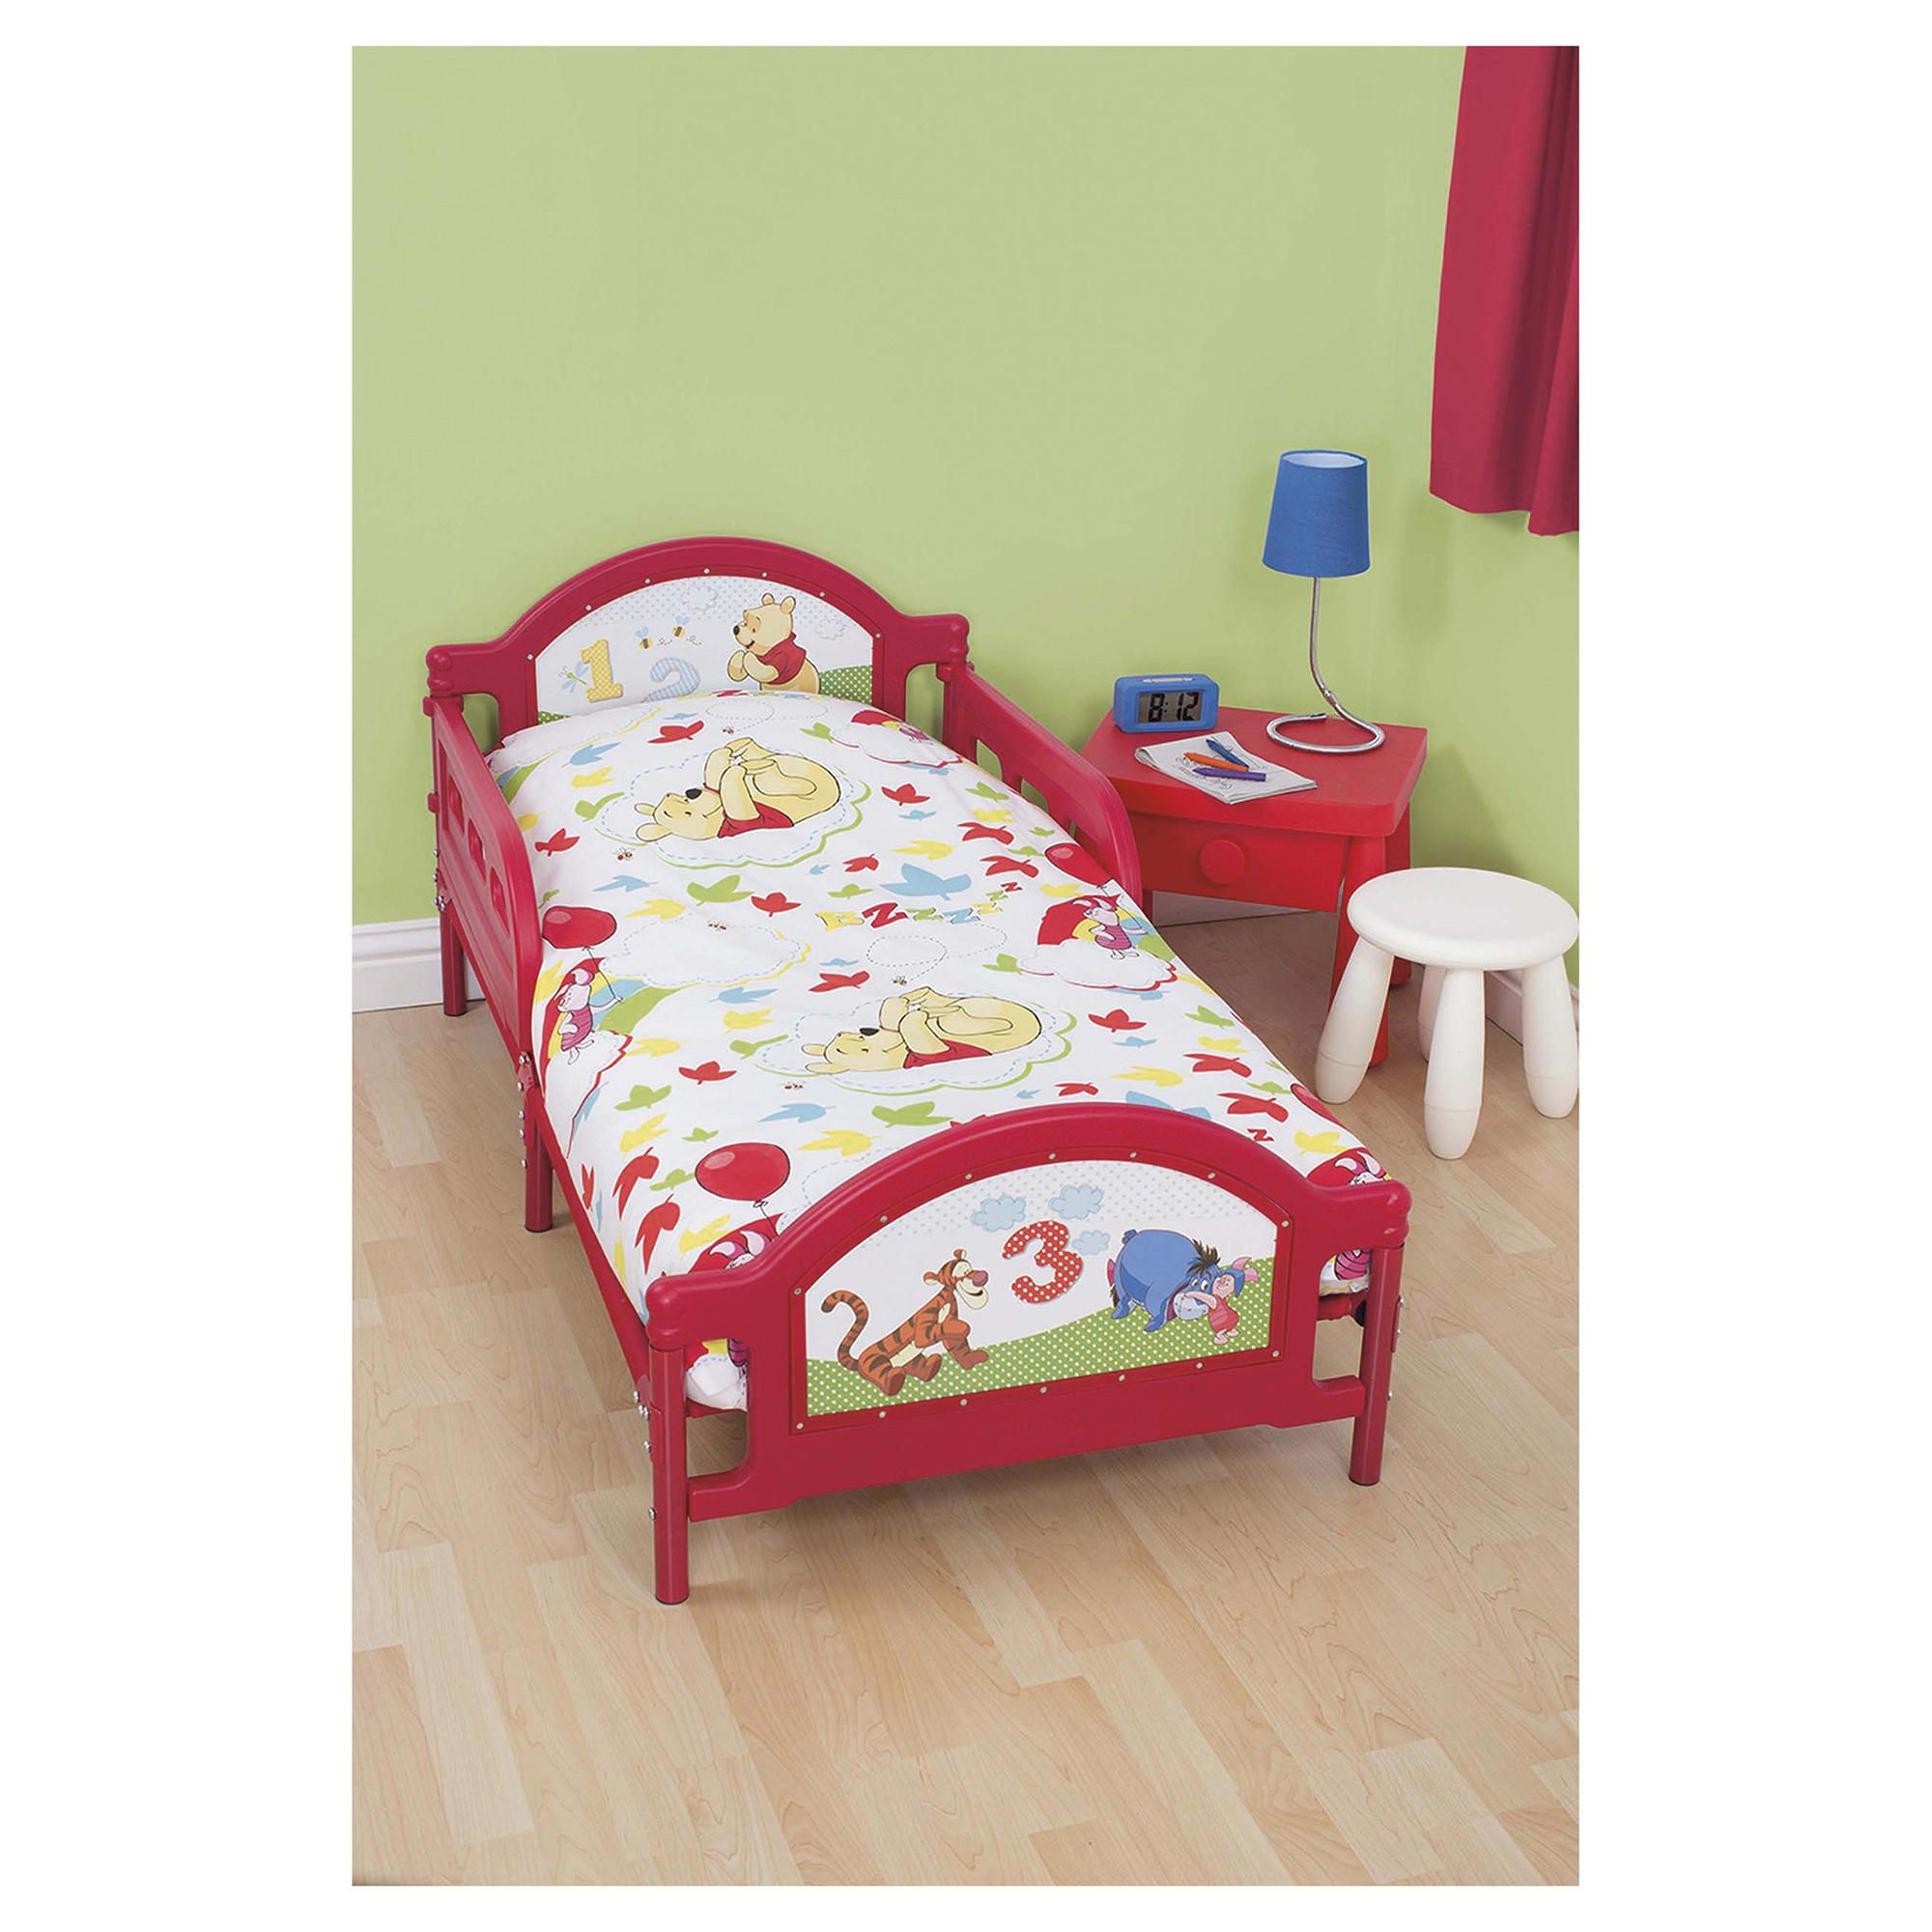 Winnie the pooh toddler bedding - Winnie The Pooh Toddler Bed In A Bag My